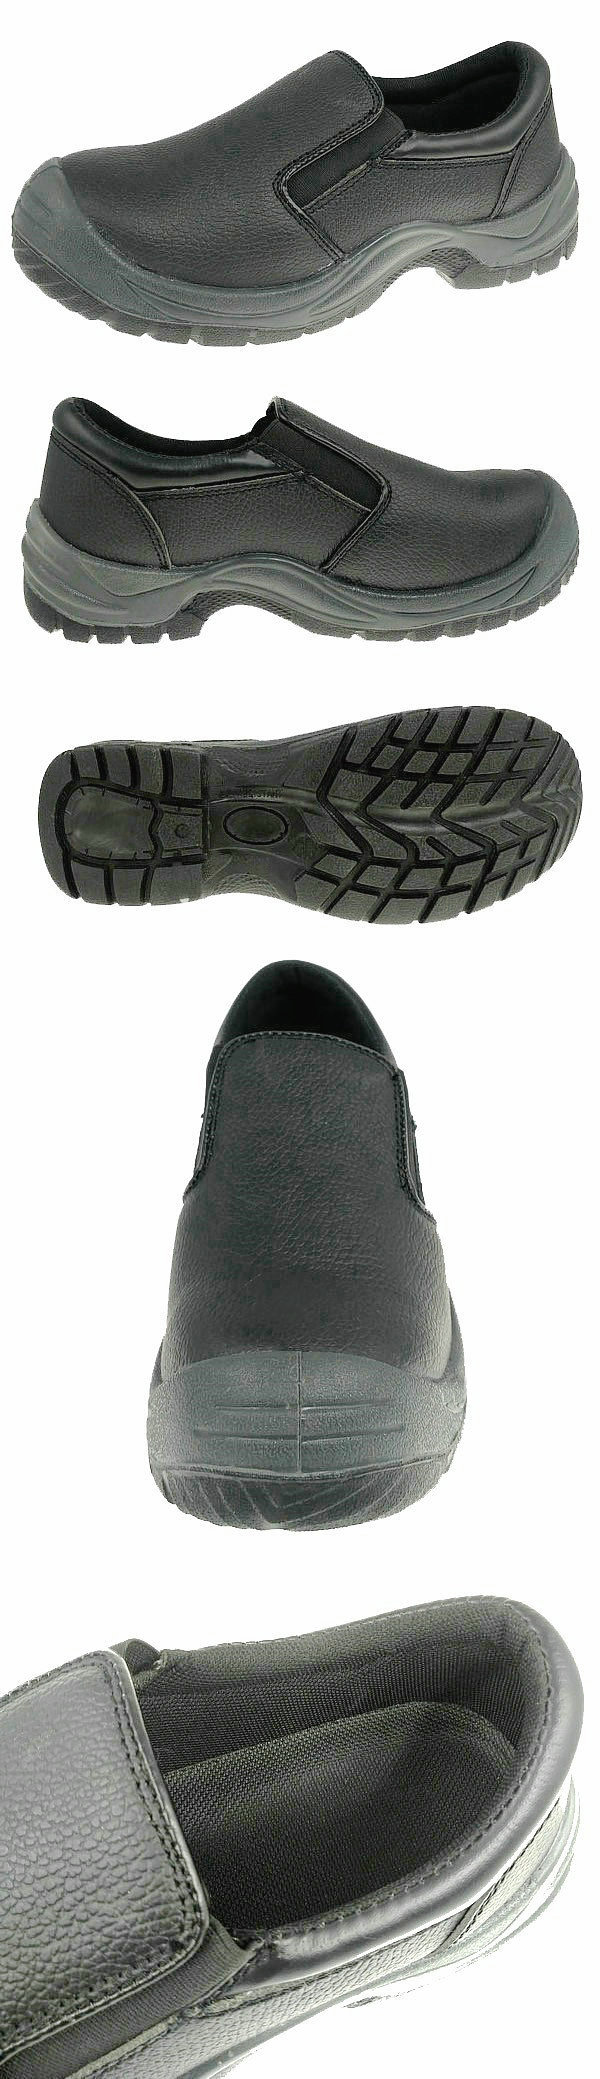 Low Cut Split Cow Leather Safety Footwear